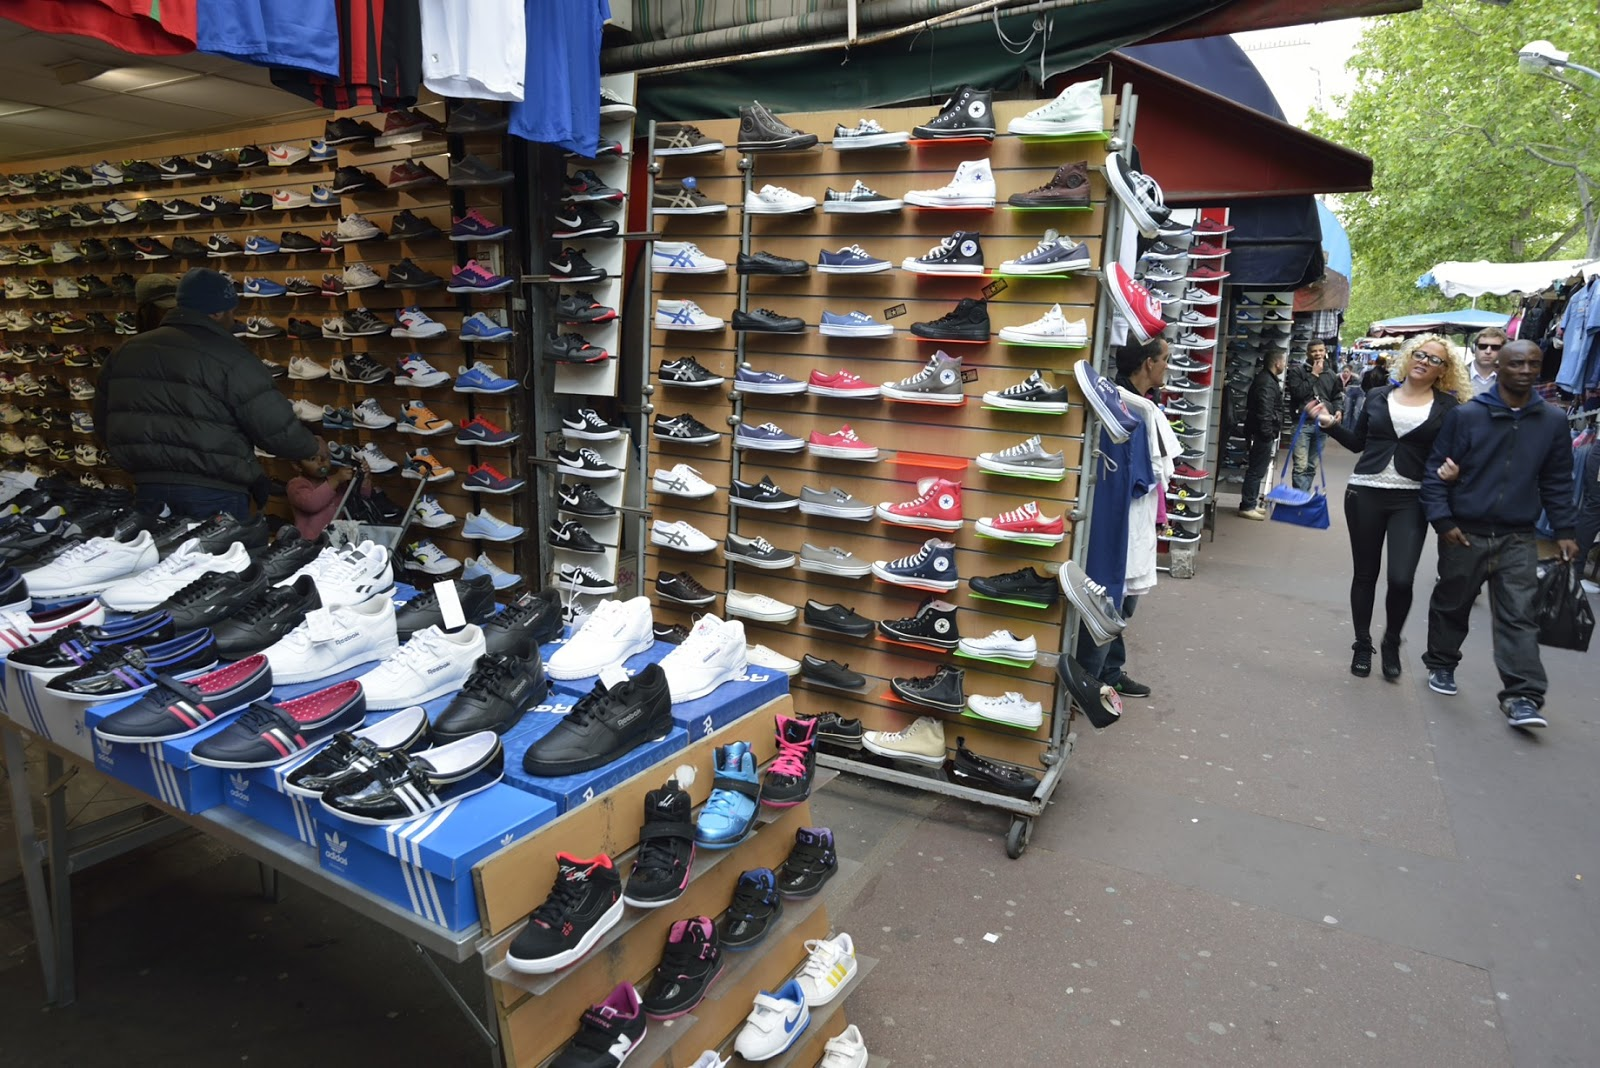 The two different sides of the Flea Market in Paris